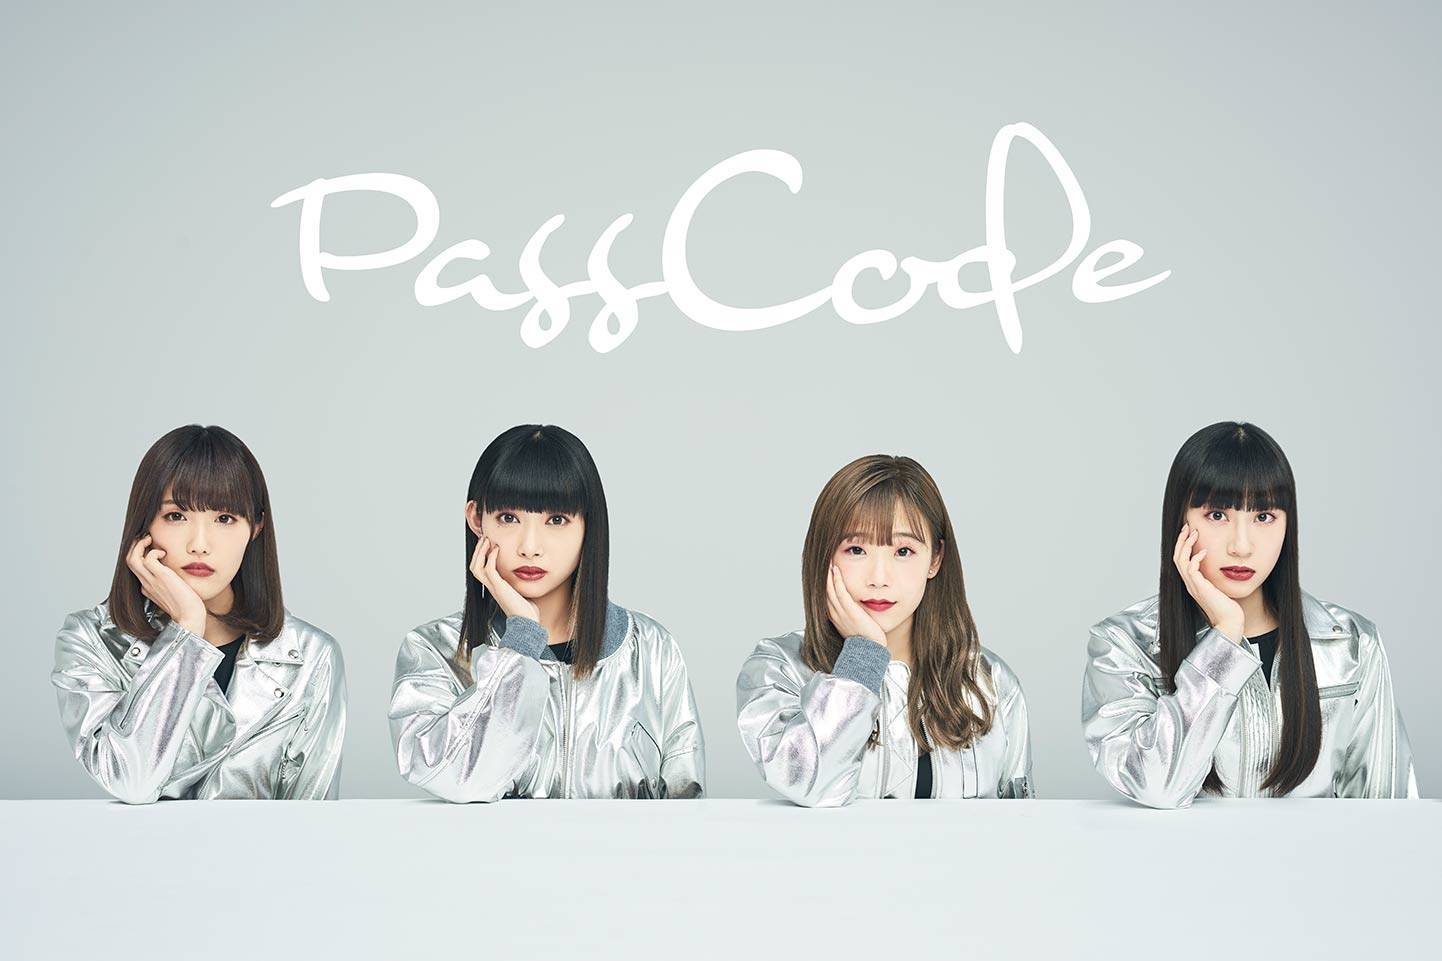 PassCode idol group electronic kawaii metal